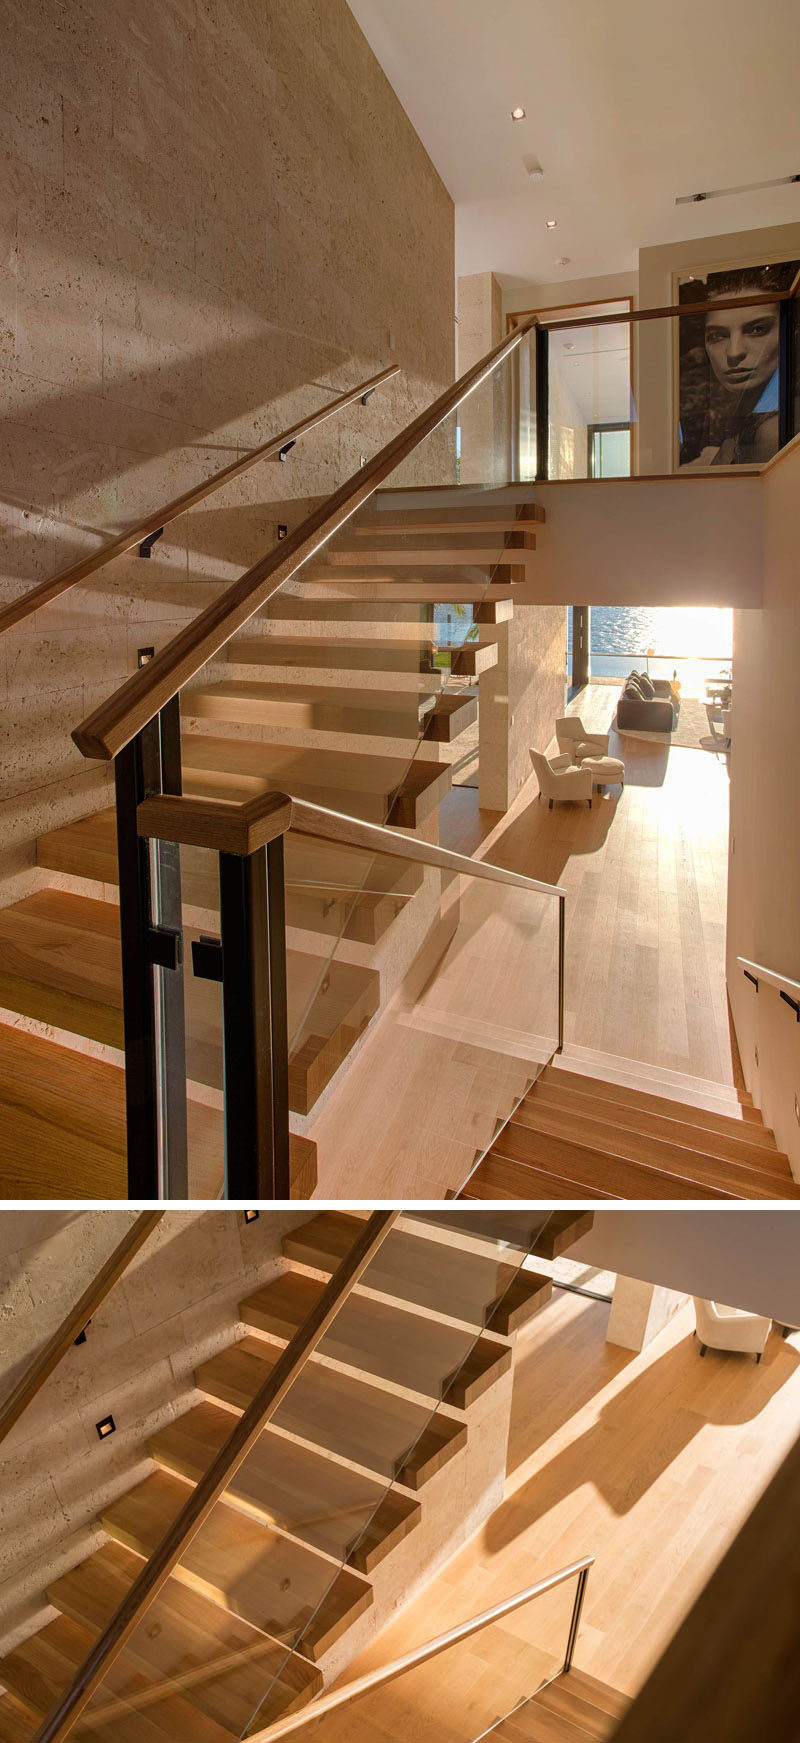 Light wood stairs with glass railings lead to the upper floor of this modern home.